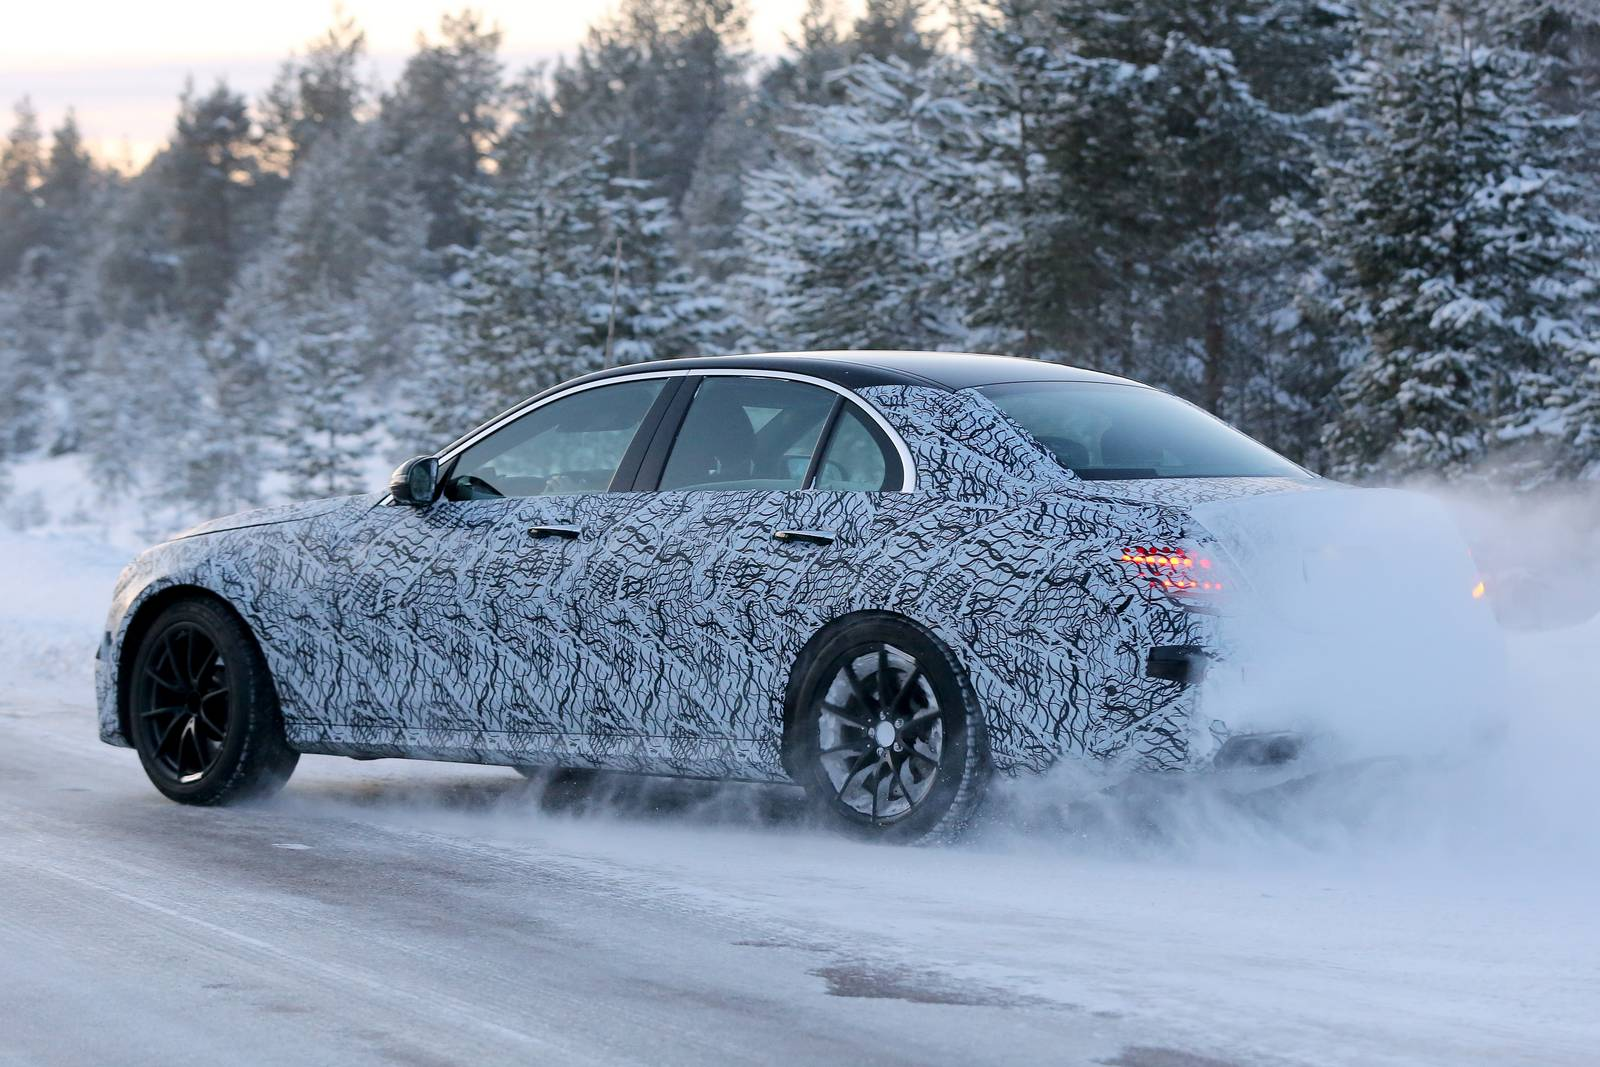 Spy Photos From The 2017 MERCEDES AMG E63 6